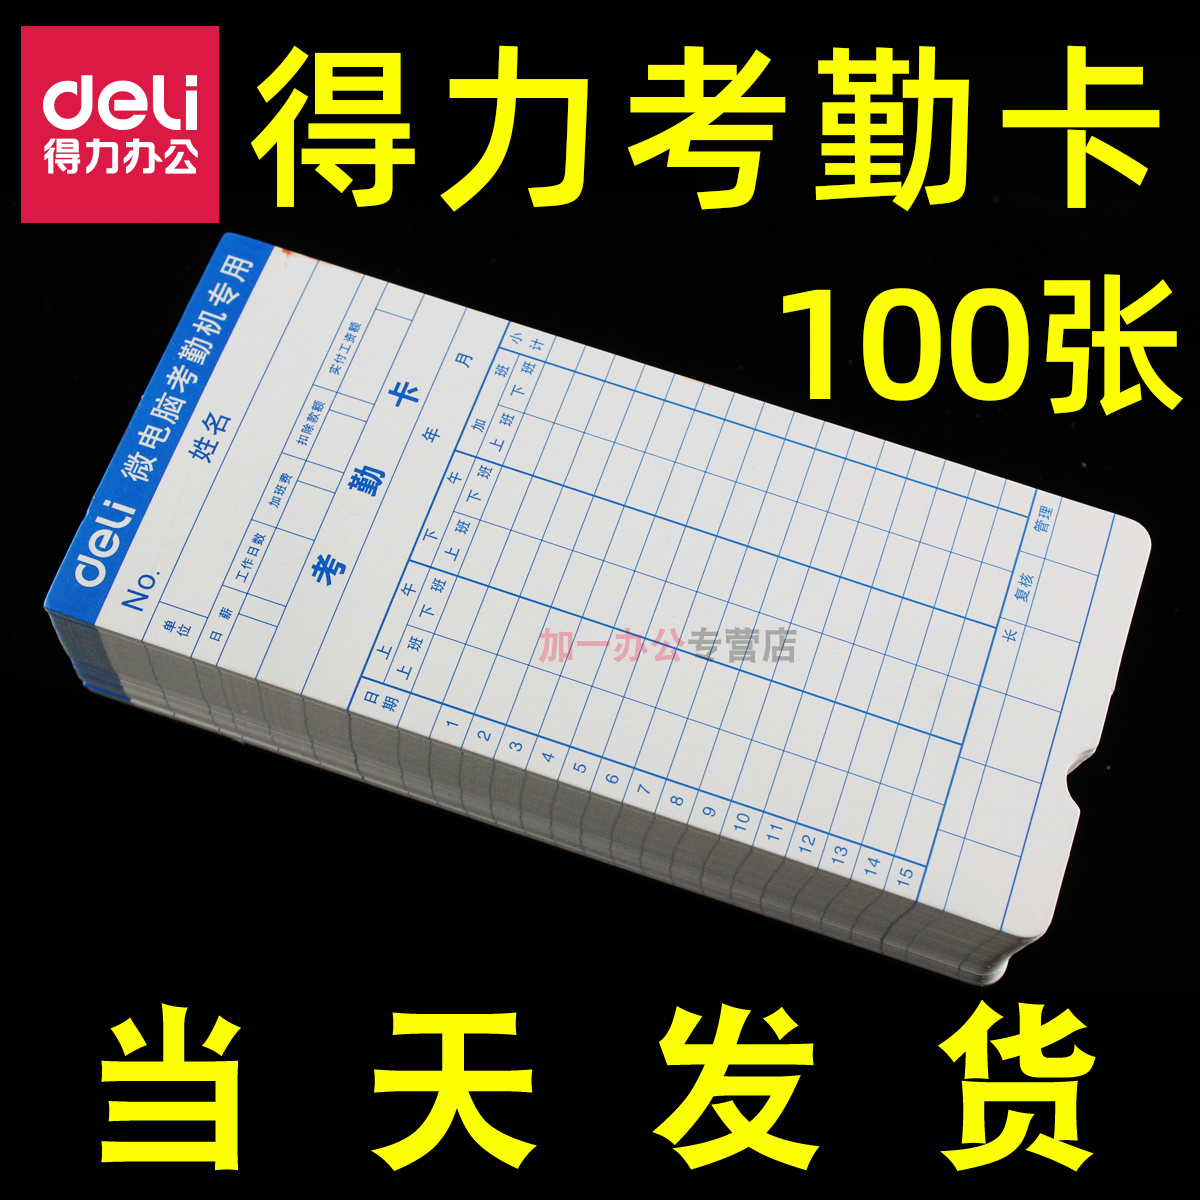 (100 sheets) strong attendance card card paper to work clocking machine clock card plus thick white universal micro-computer clock card Komi hand-written attendance machine with non-thermal attendance card table